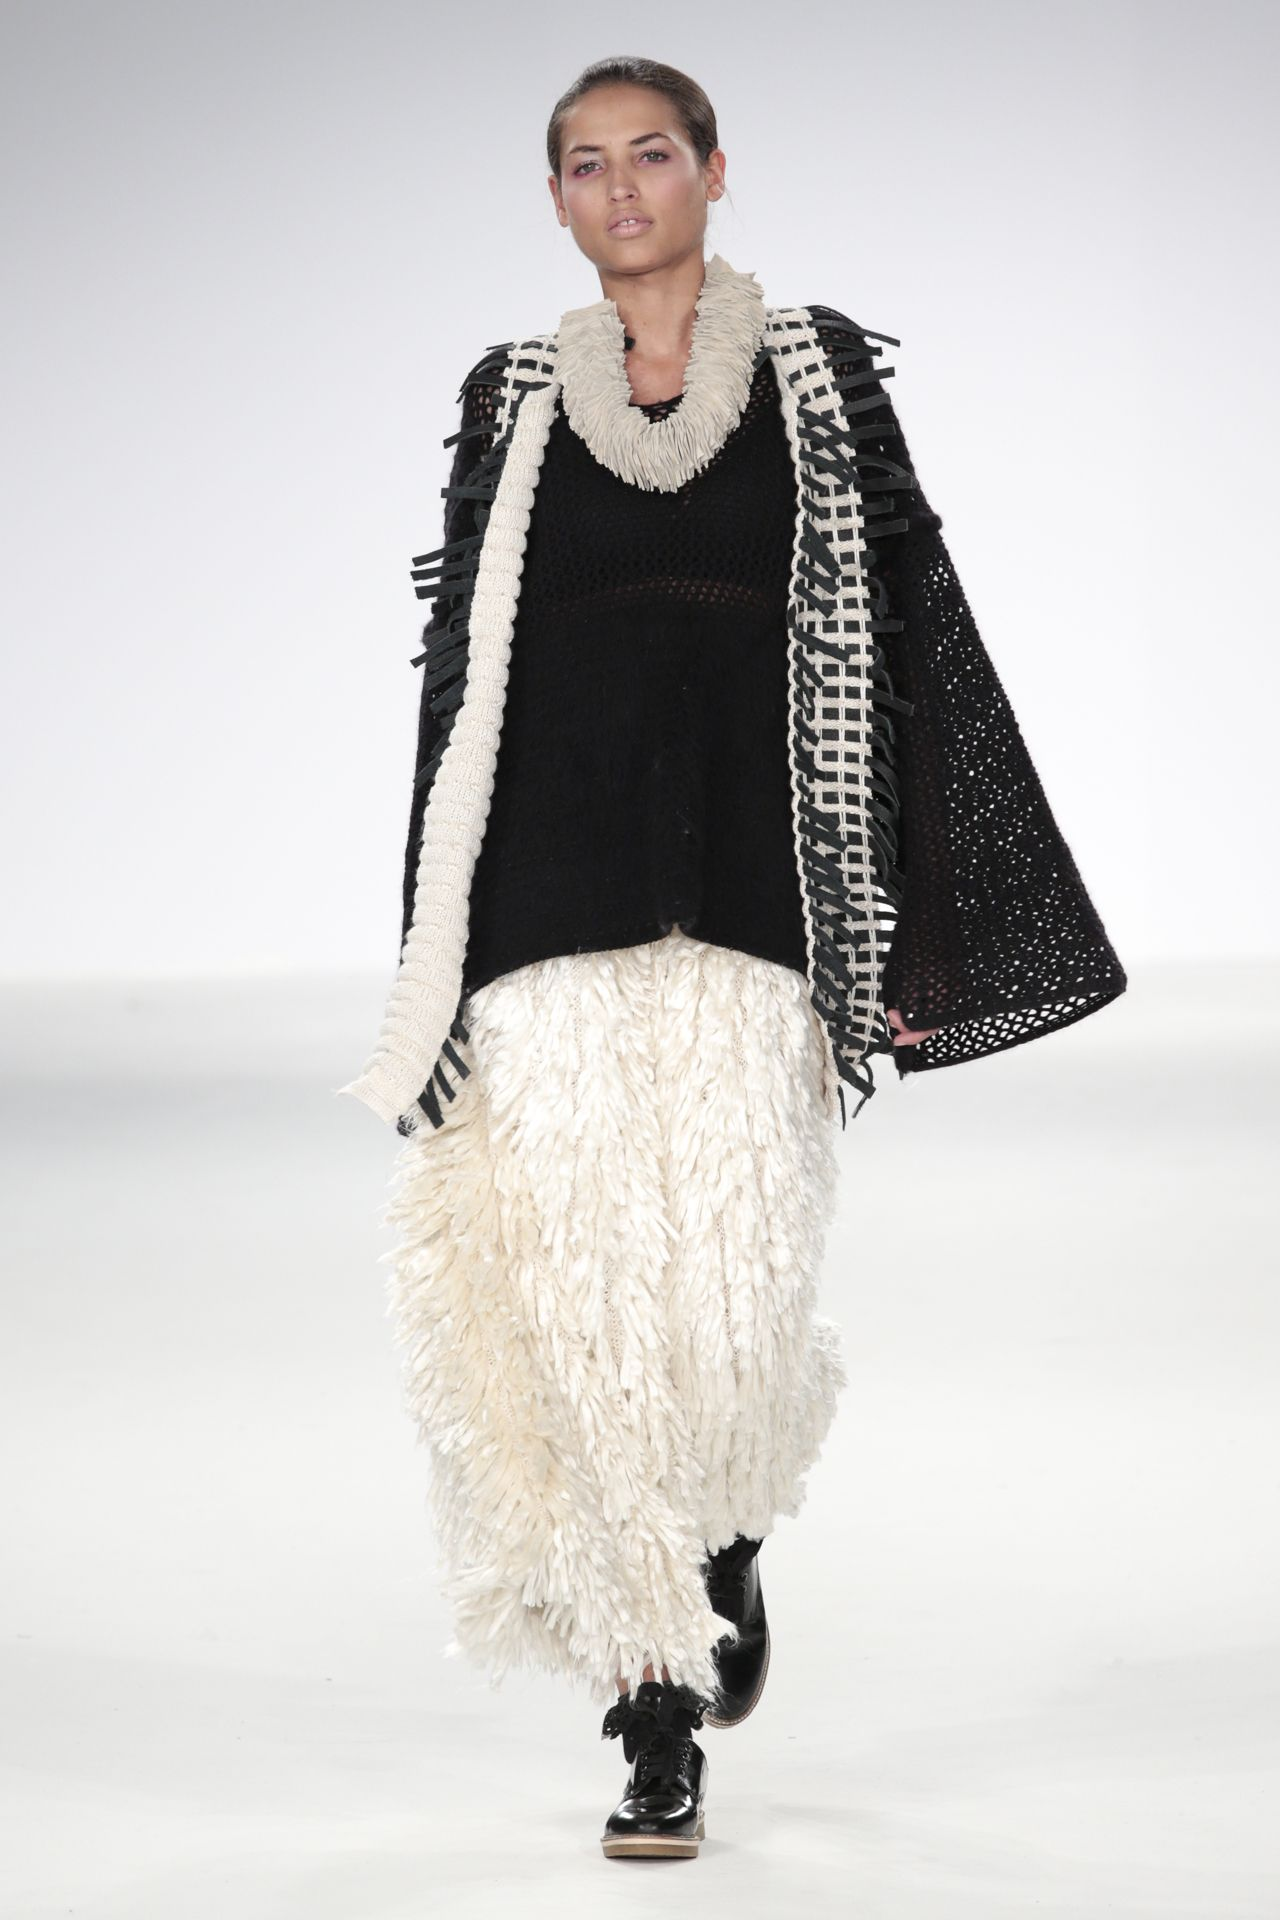 Rebecca Swann - Stuart Peters Visionary Knitwear Award - BA Fashion Knitwear Design 2015